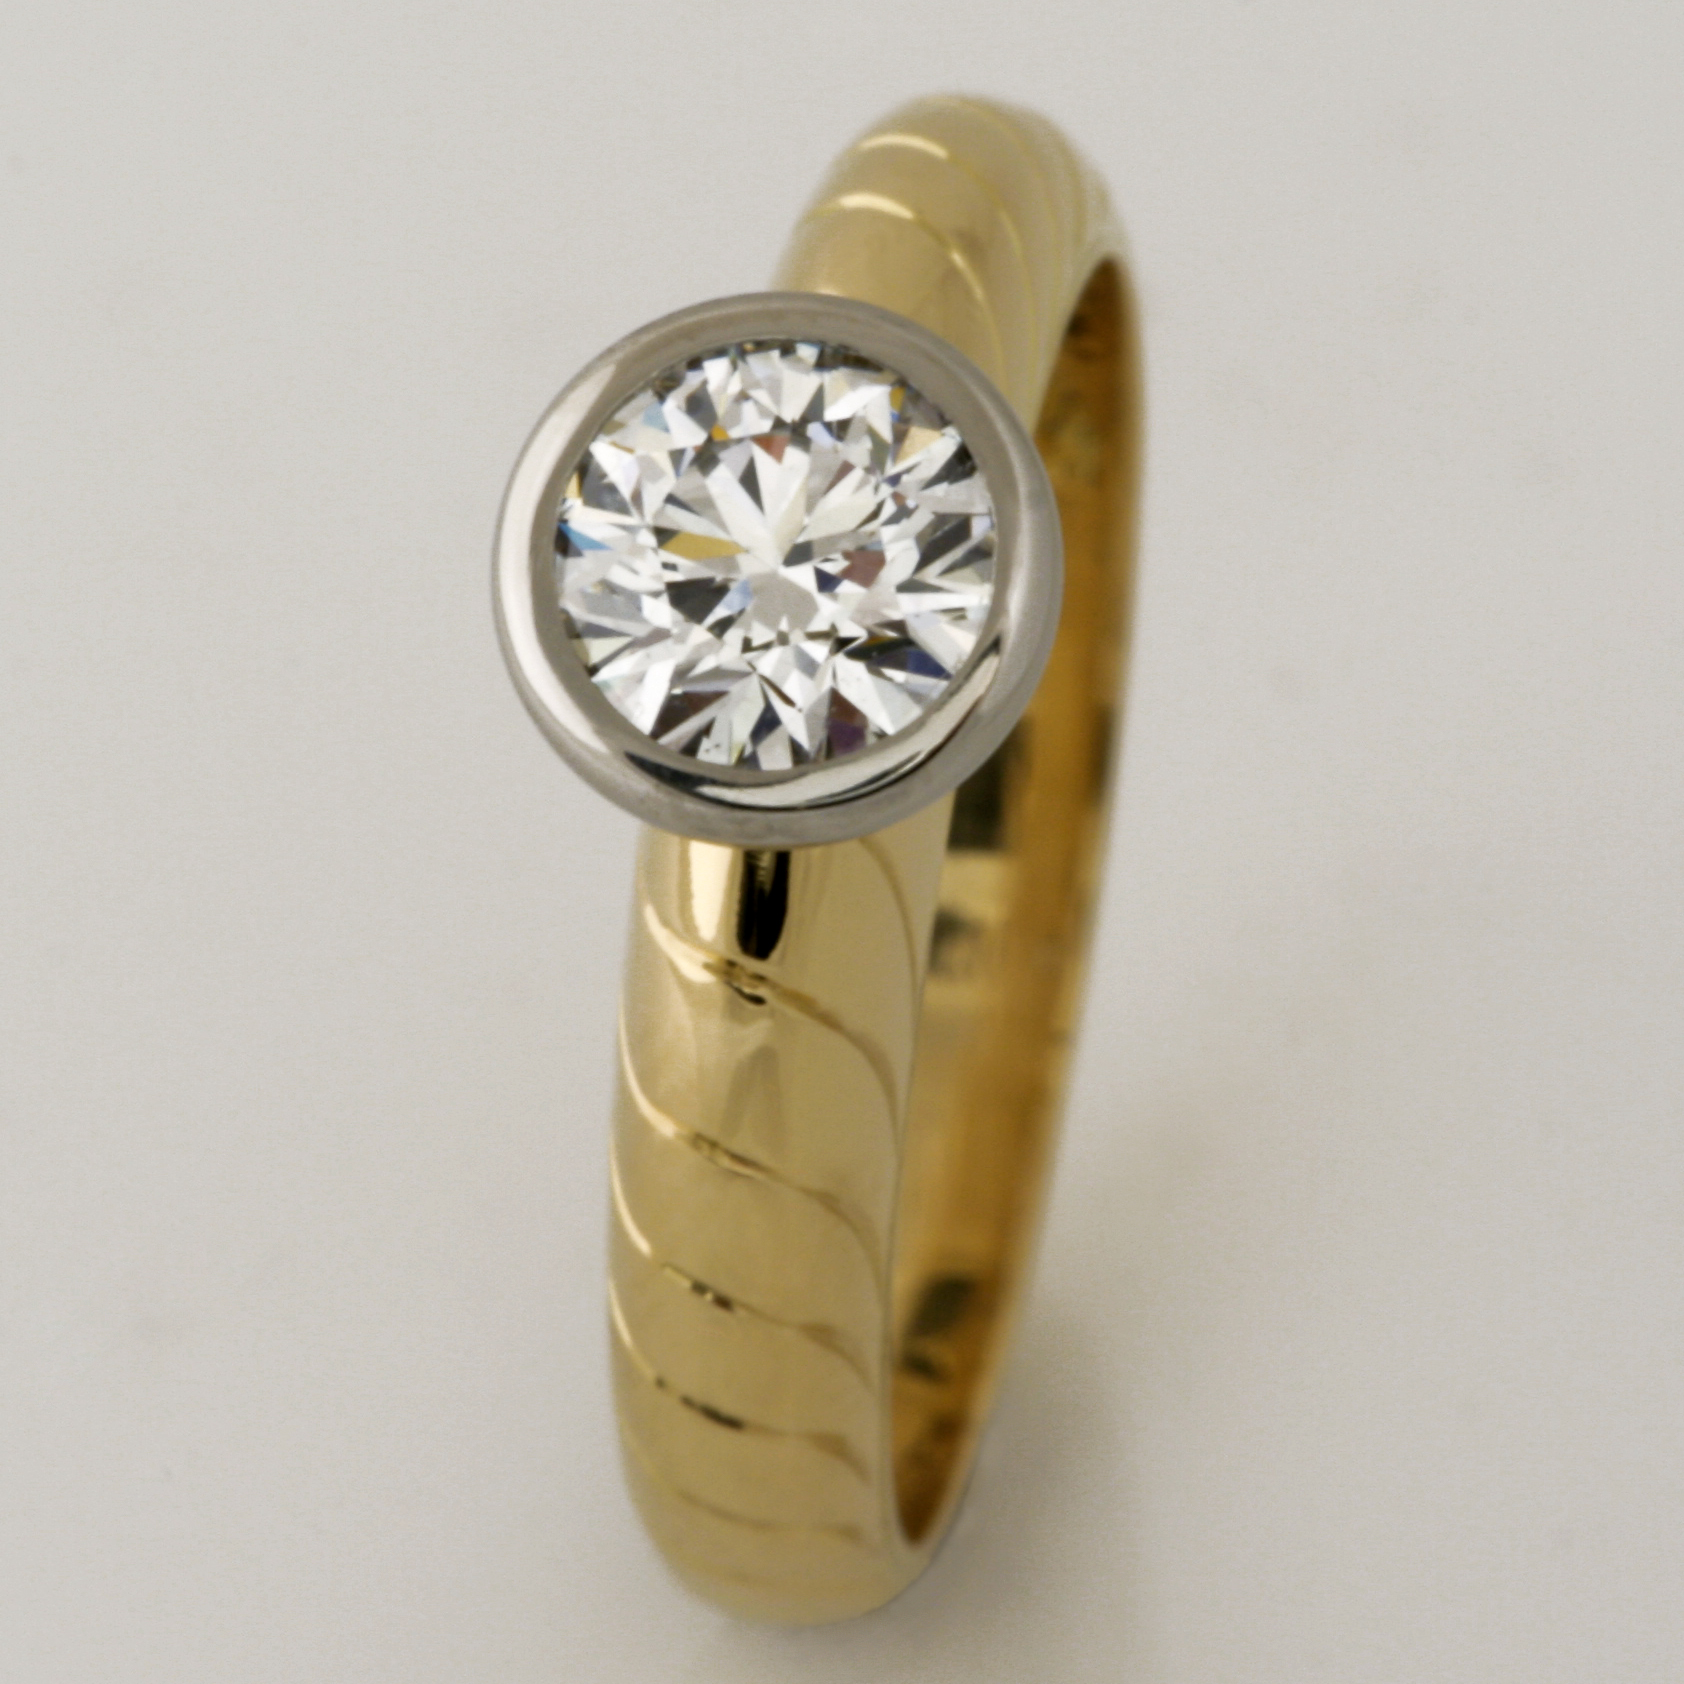 Handmade ladies 18ct yellow gold and palladium EightStar diamond ring.